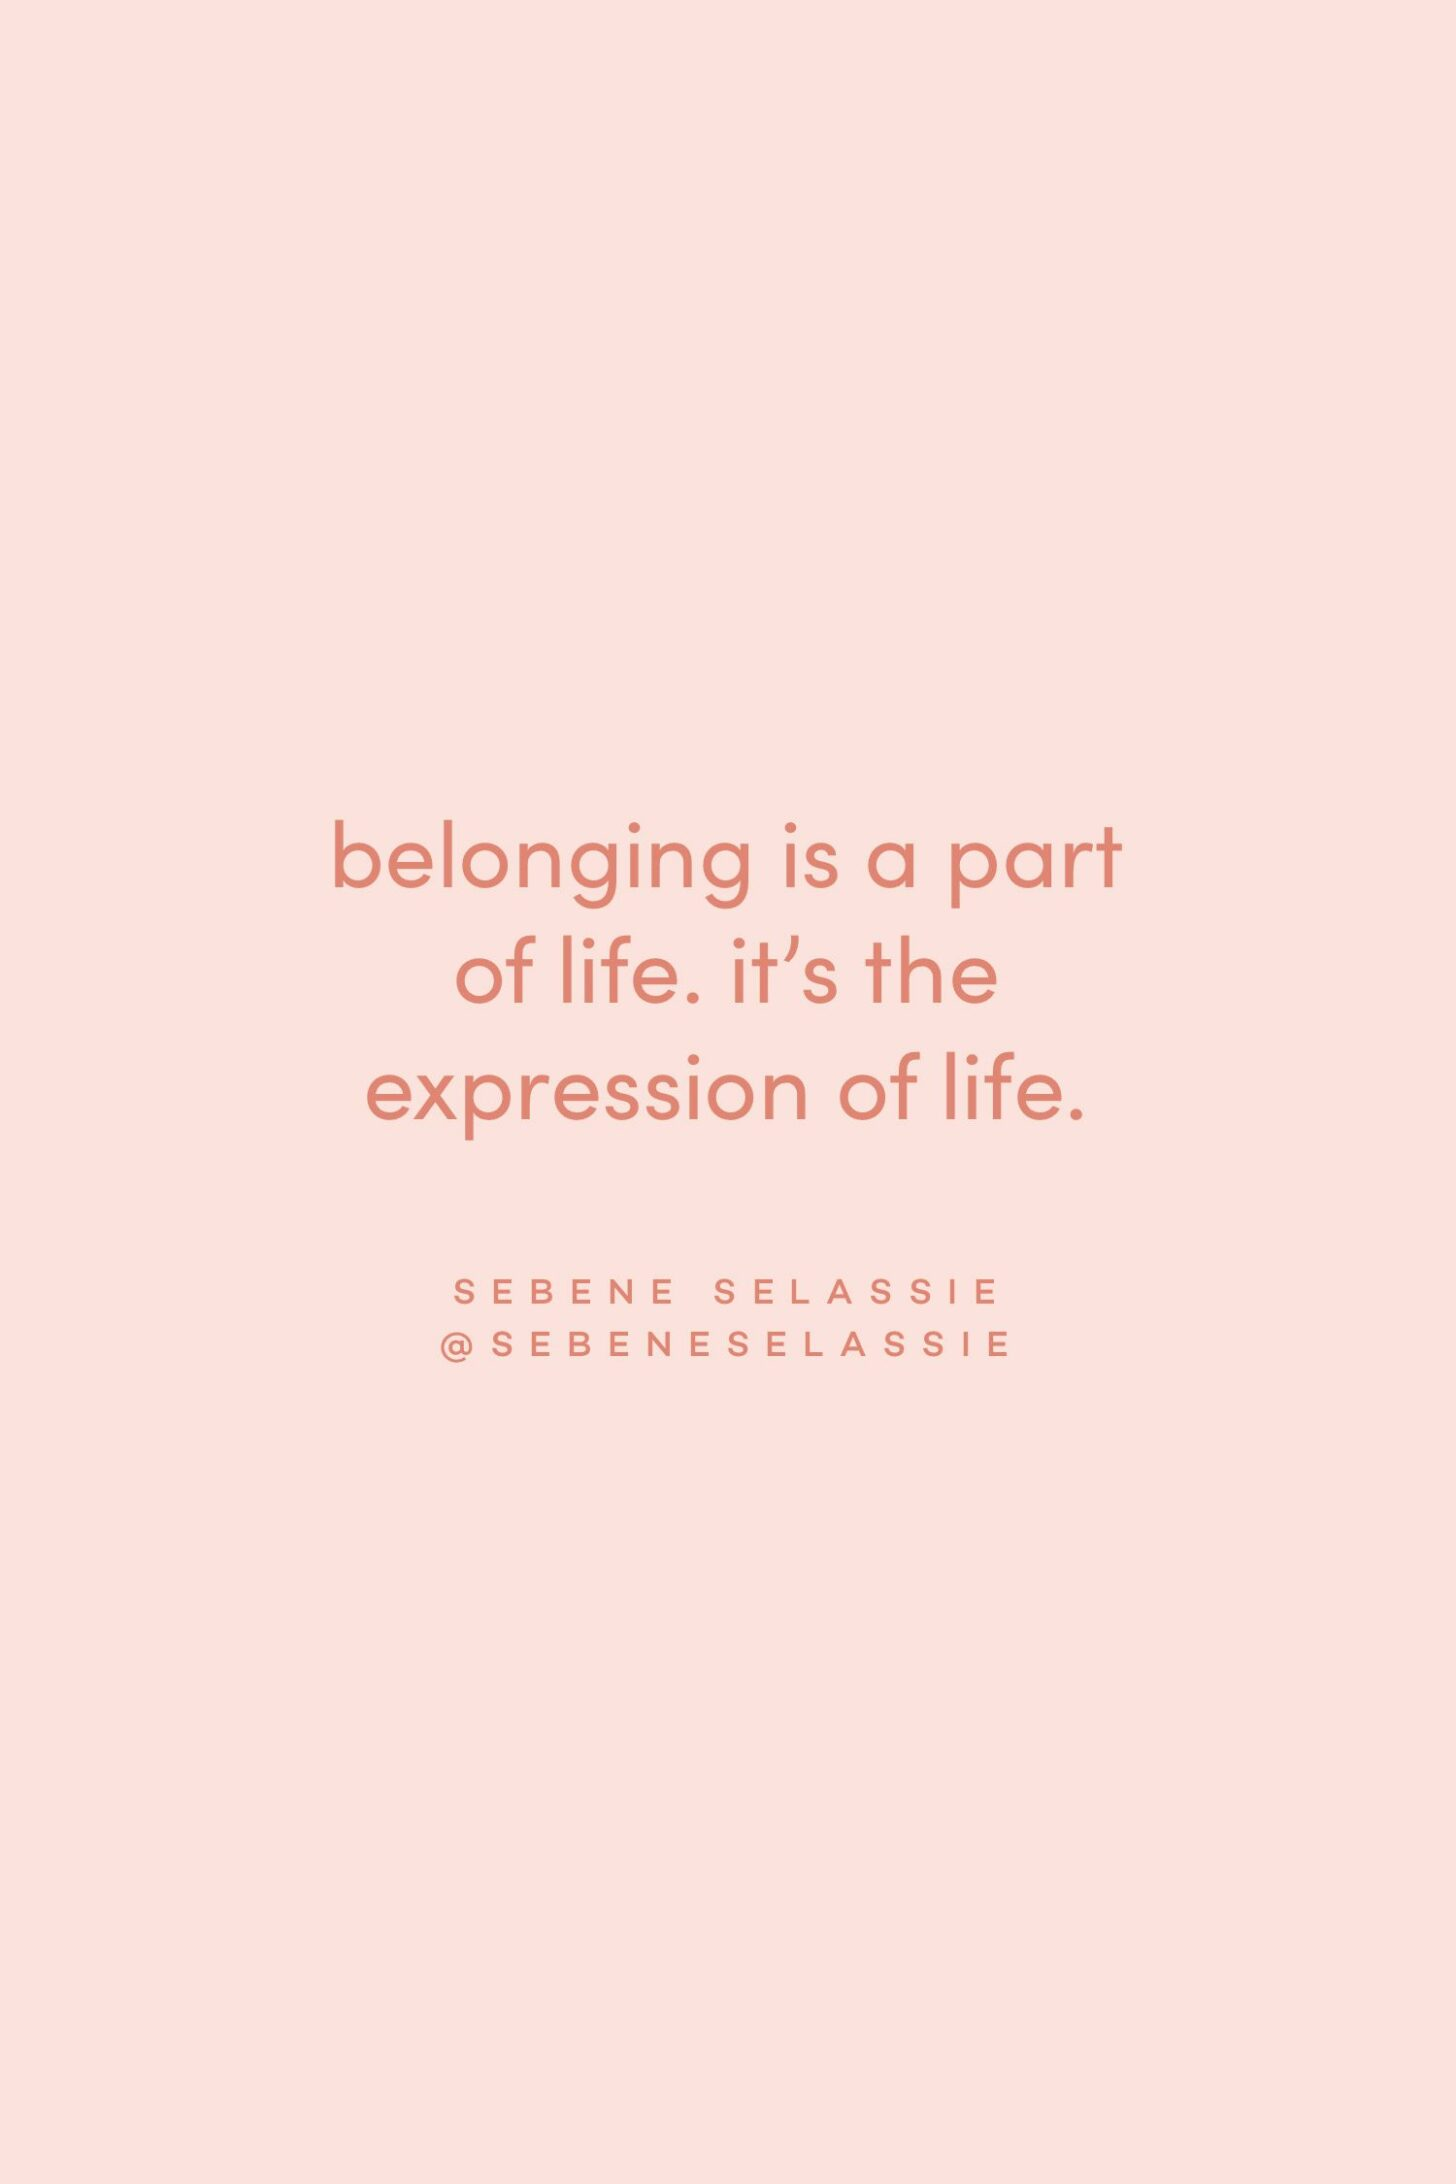 Quote on belonging by Sebene Selassie on the Feel Good Effect Podcast #realfoodwholelife #feelgoodeffectpodcast #motivationalquote #positivityquote #inspirationalquote #feelingquote #selfcarequote #belongingquote